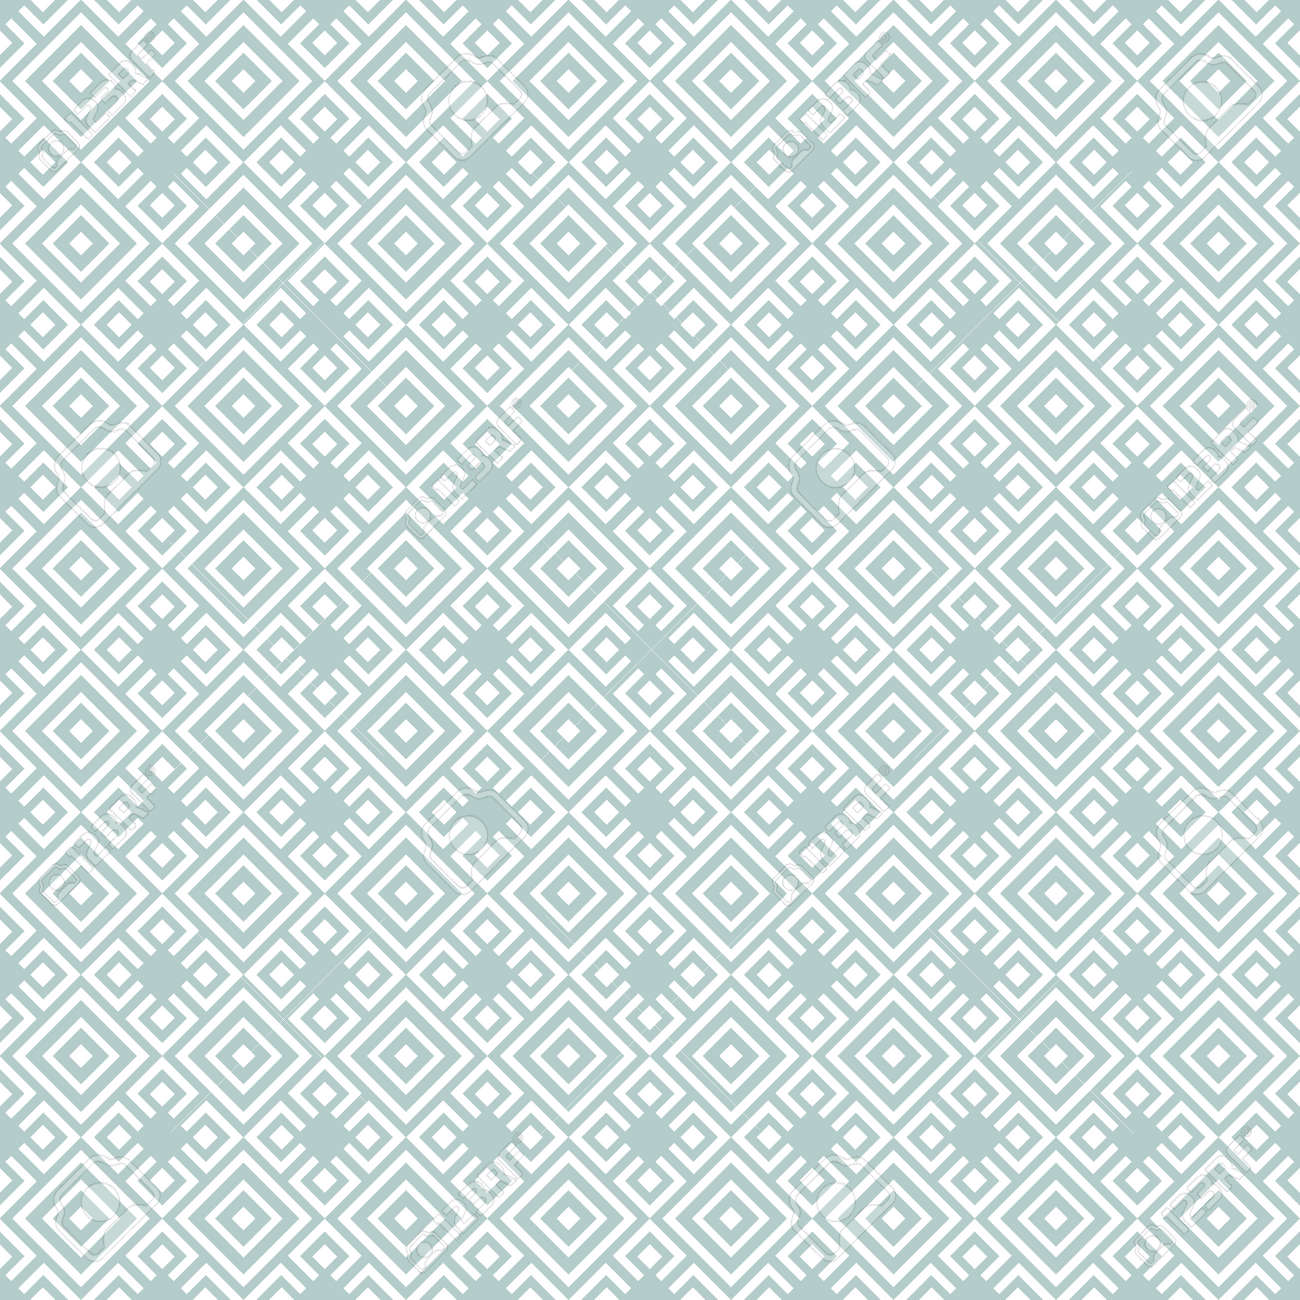 Geometric abstract vector pattern. Geometric modern light blue and white ornament. Seamless modern background - 169499791